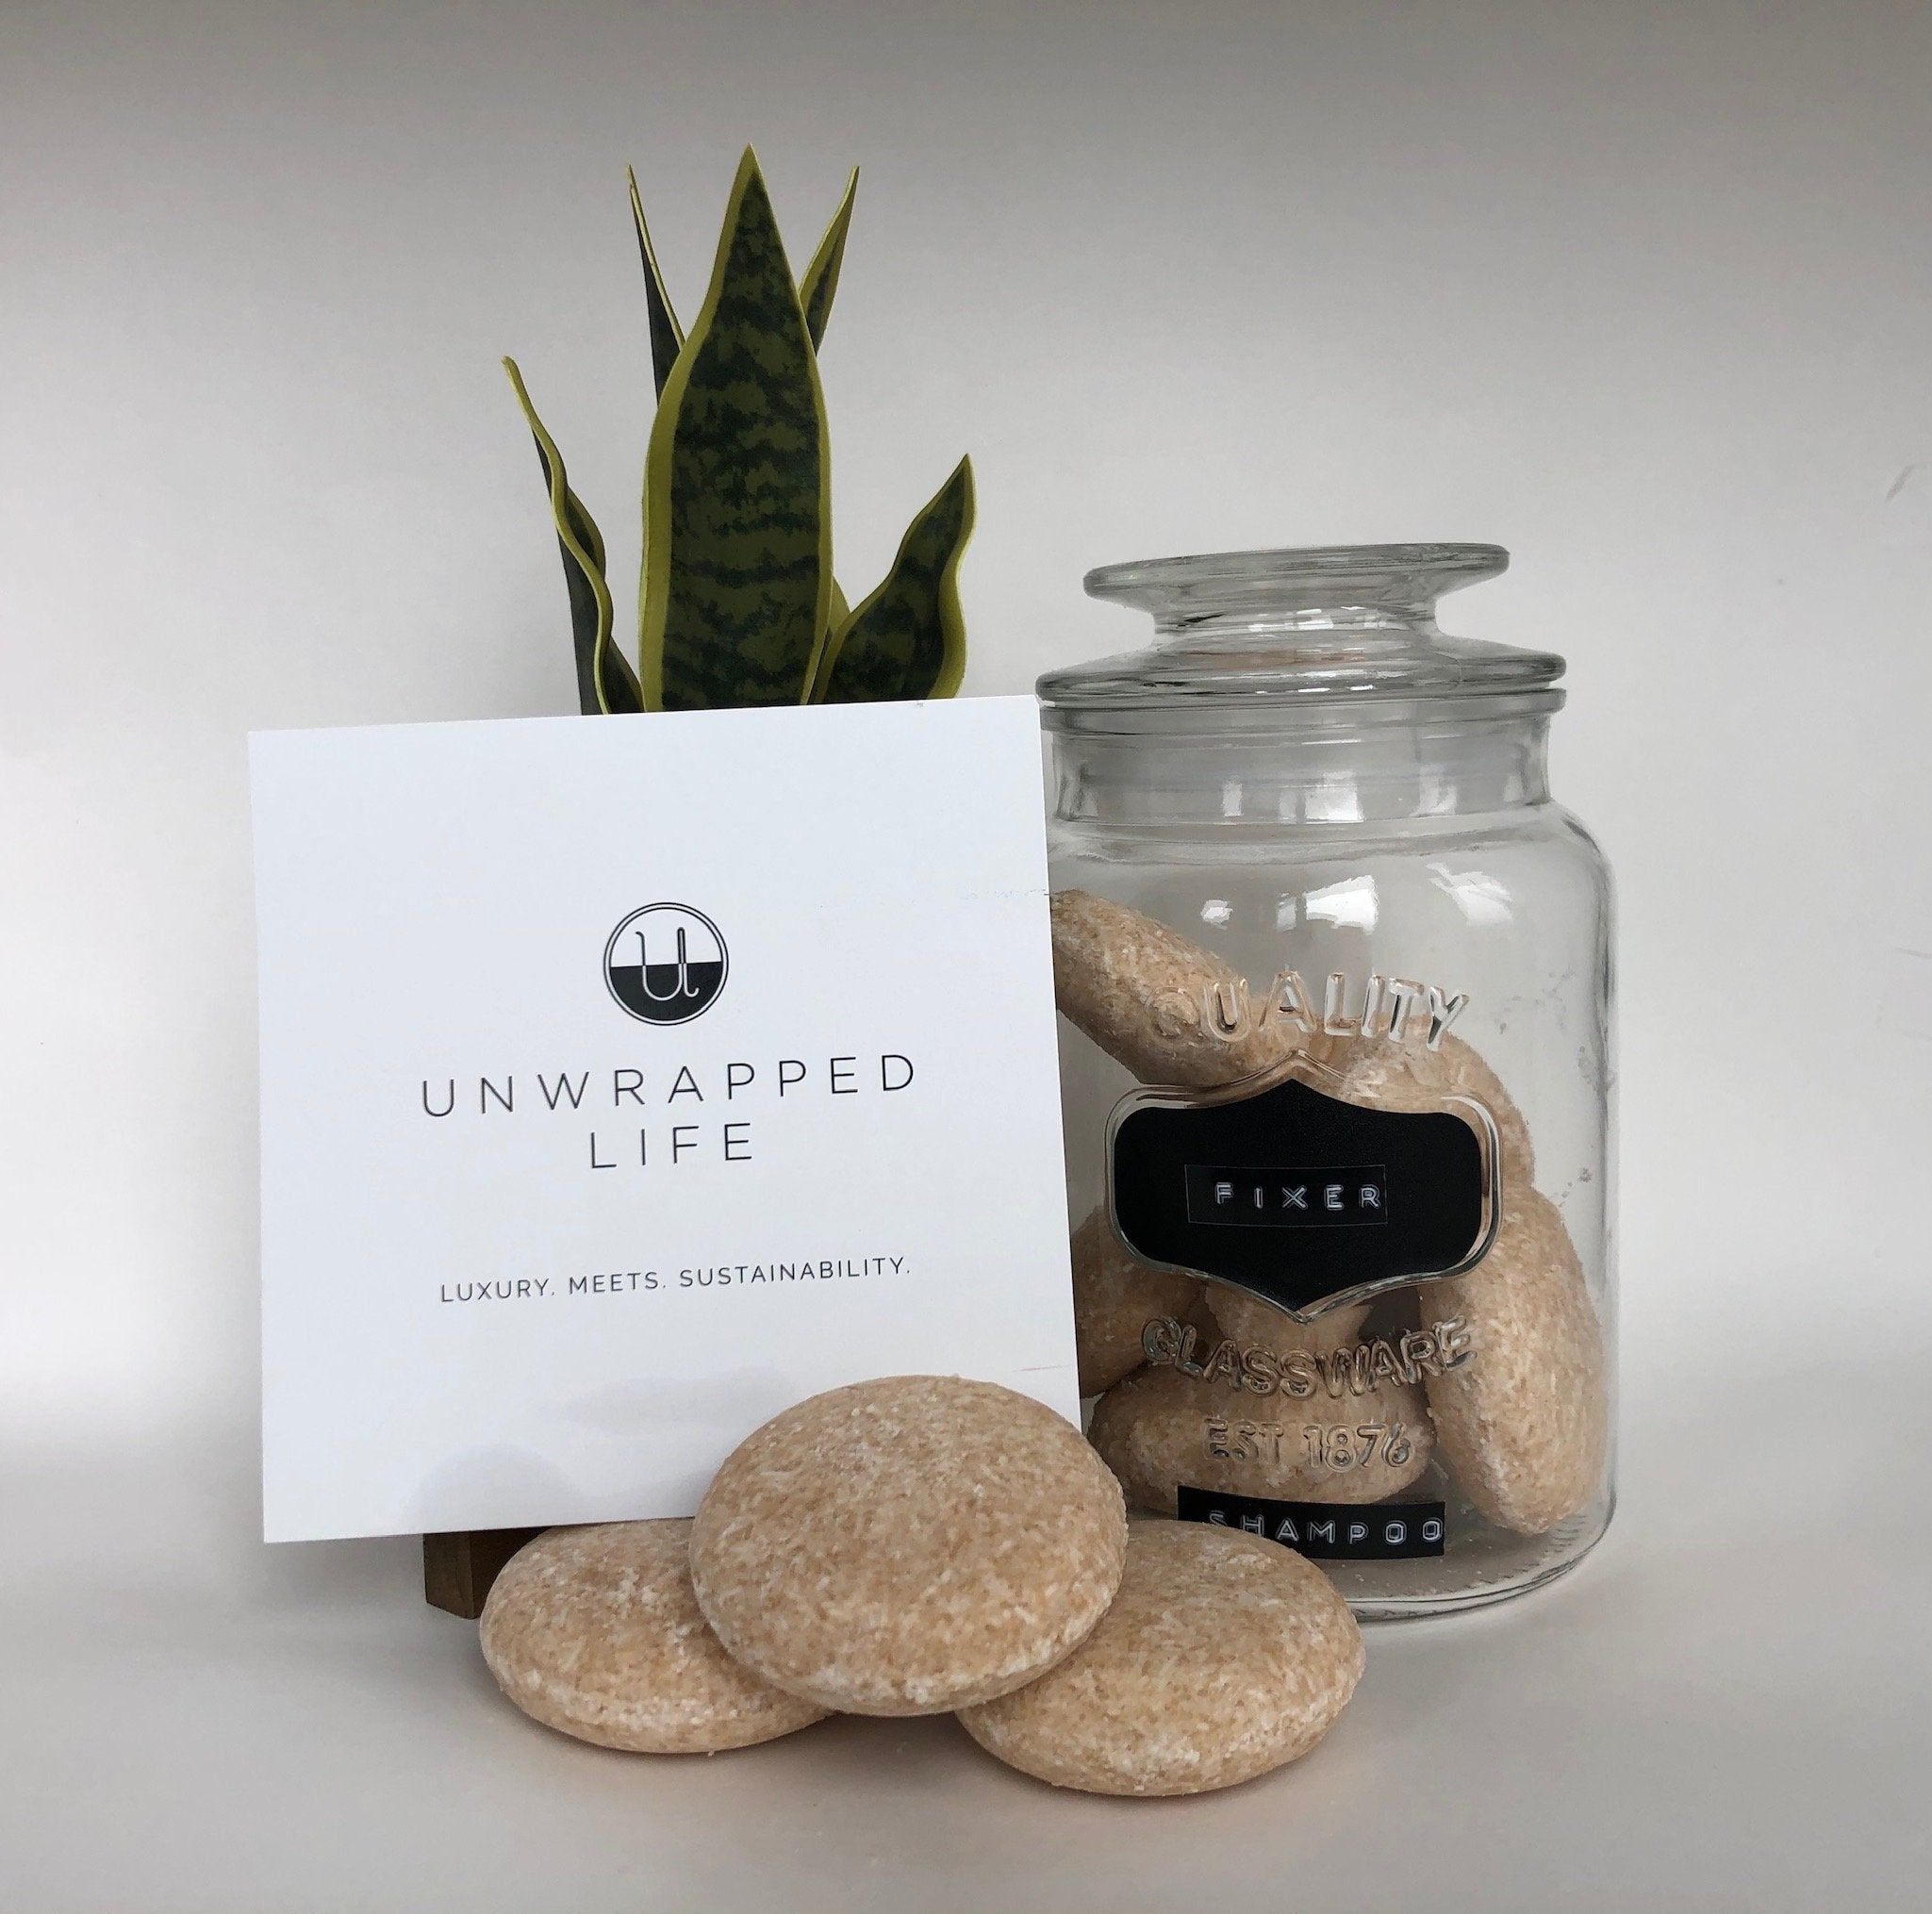 The Unwrapped Life- The Fixer Shampoo Bar